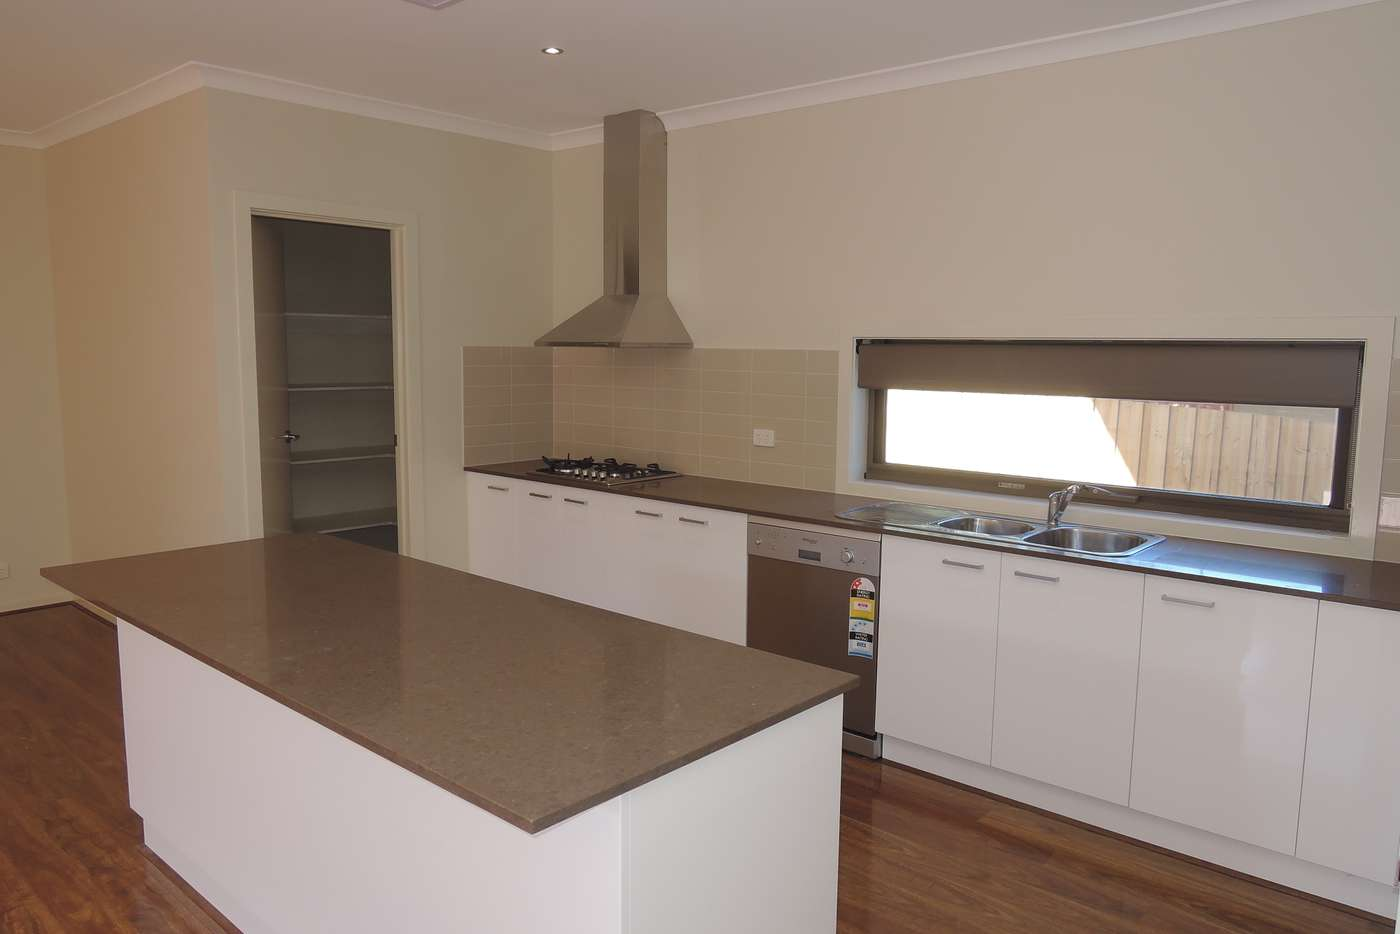 Seventh view of Homely townhouse listing, 1/17 Richard Street, Doncaster East VIC 3109